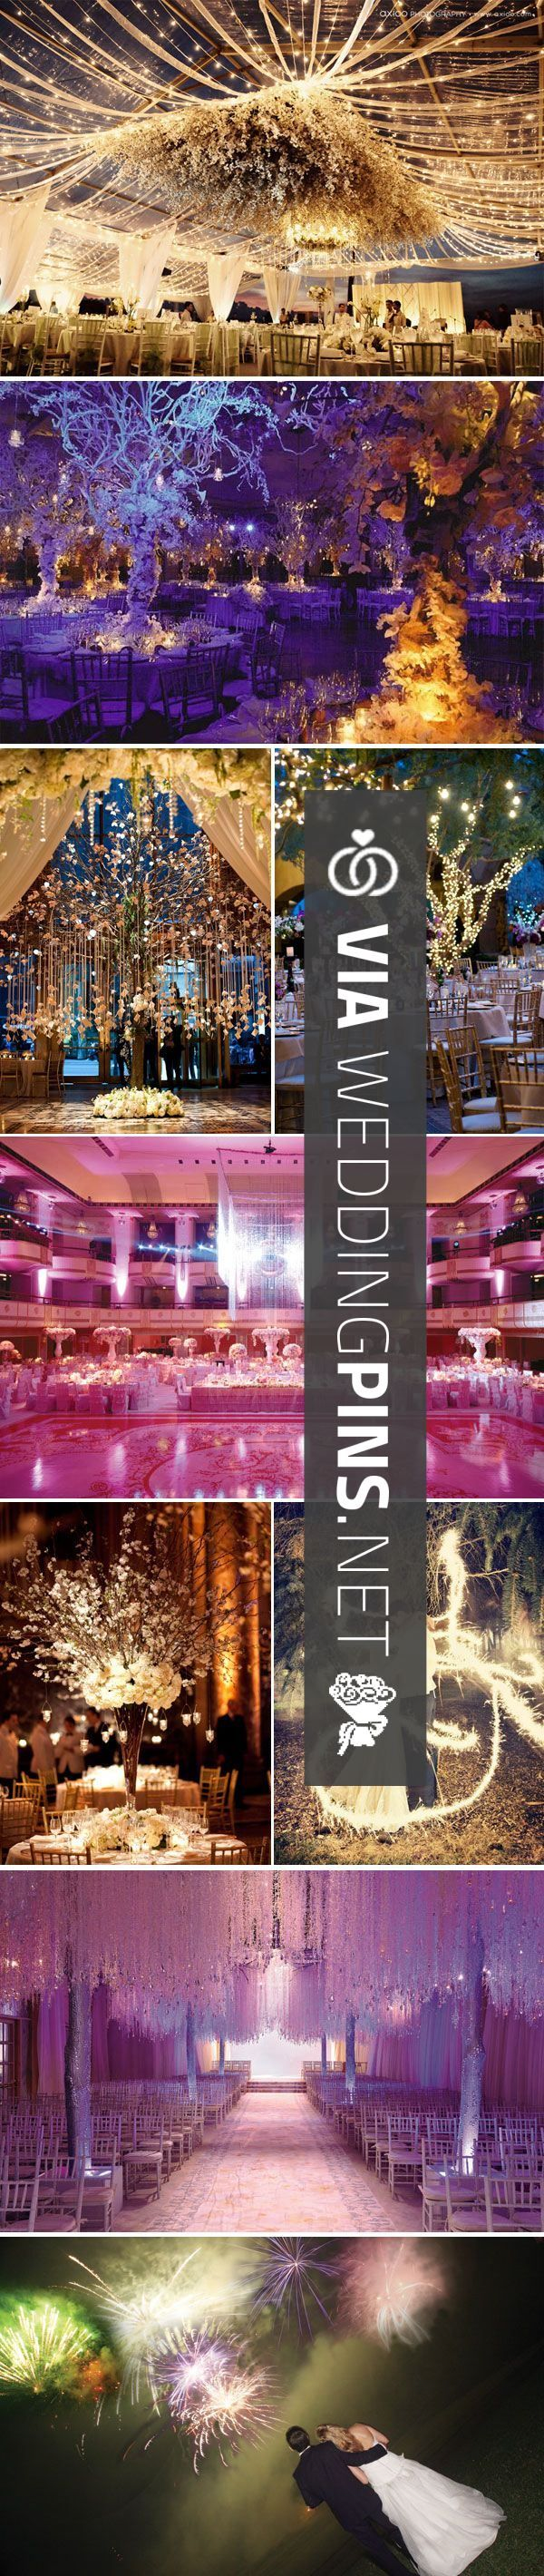 Wedding decor images zimbabwe  beautiful inspiration for the reception  Weddings  Pinterest